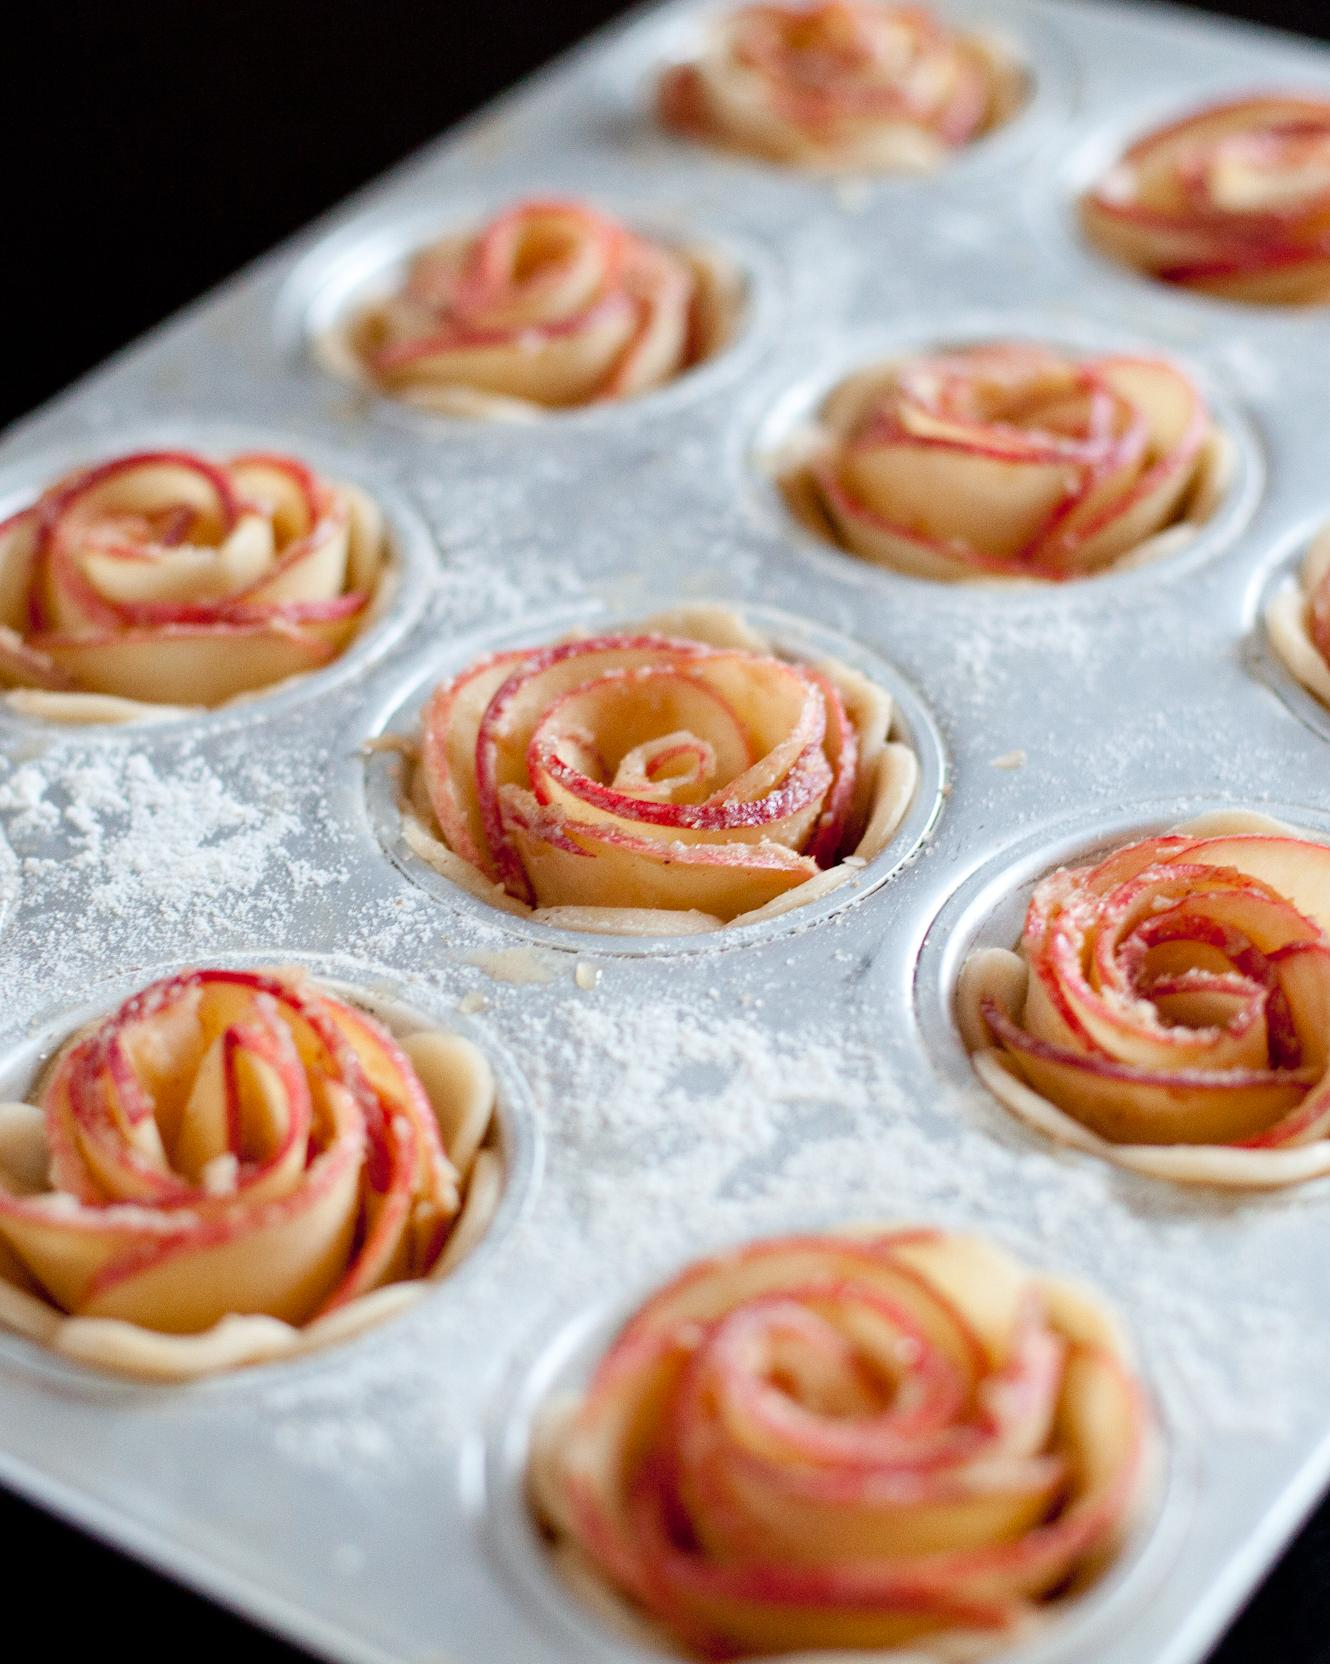 Transfer rolled apples to mini pie shells